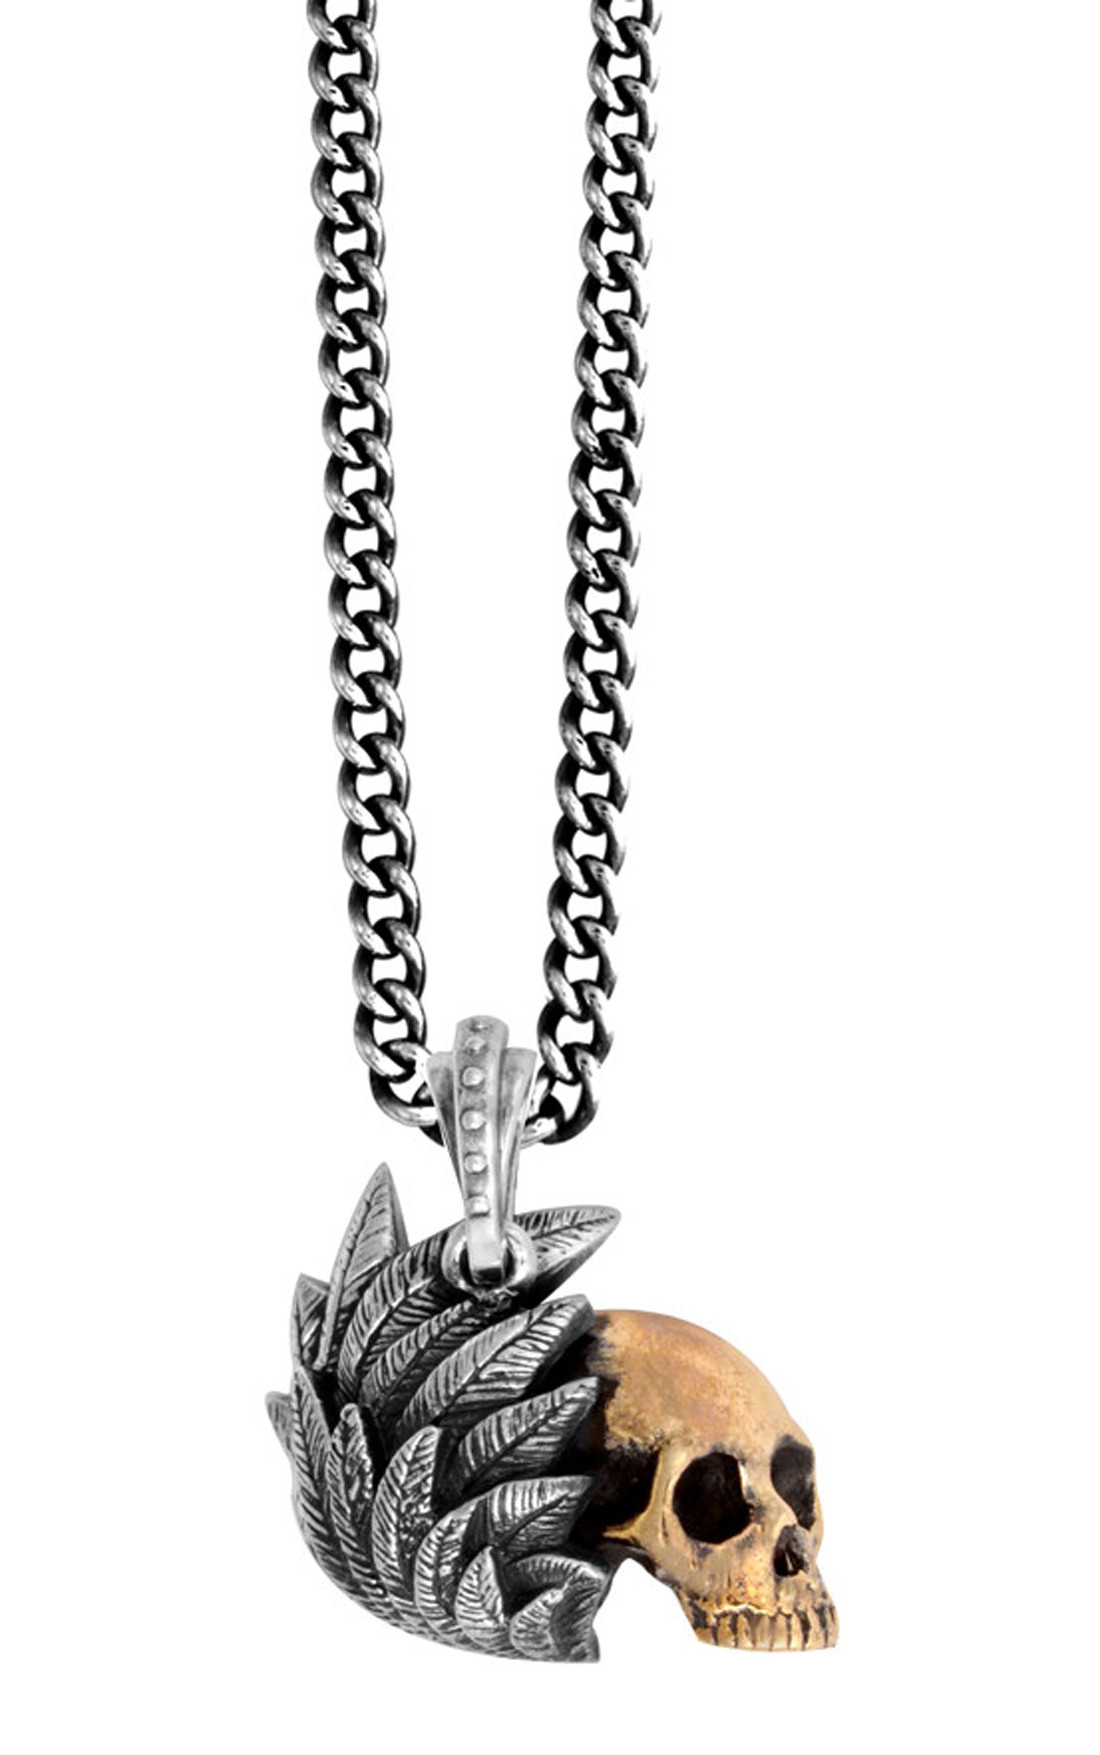 King Baby - Alloy Skull with Silver Raven Wing Pendant (K10-5514)